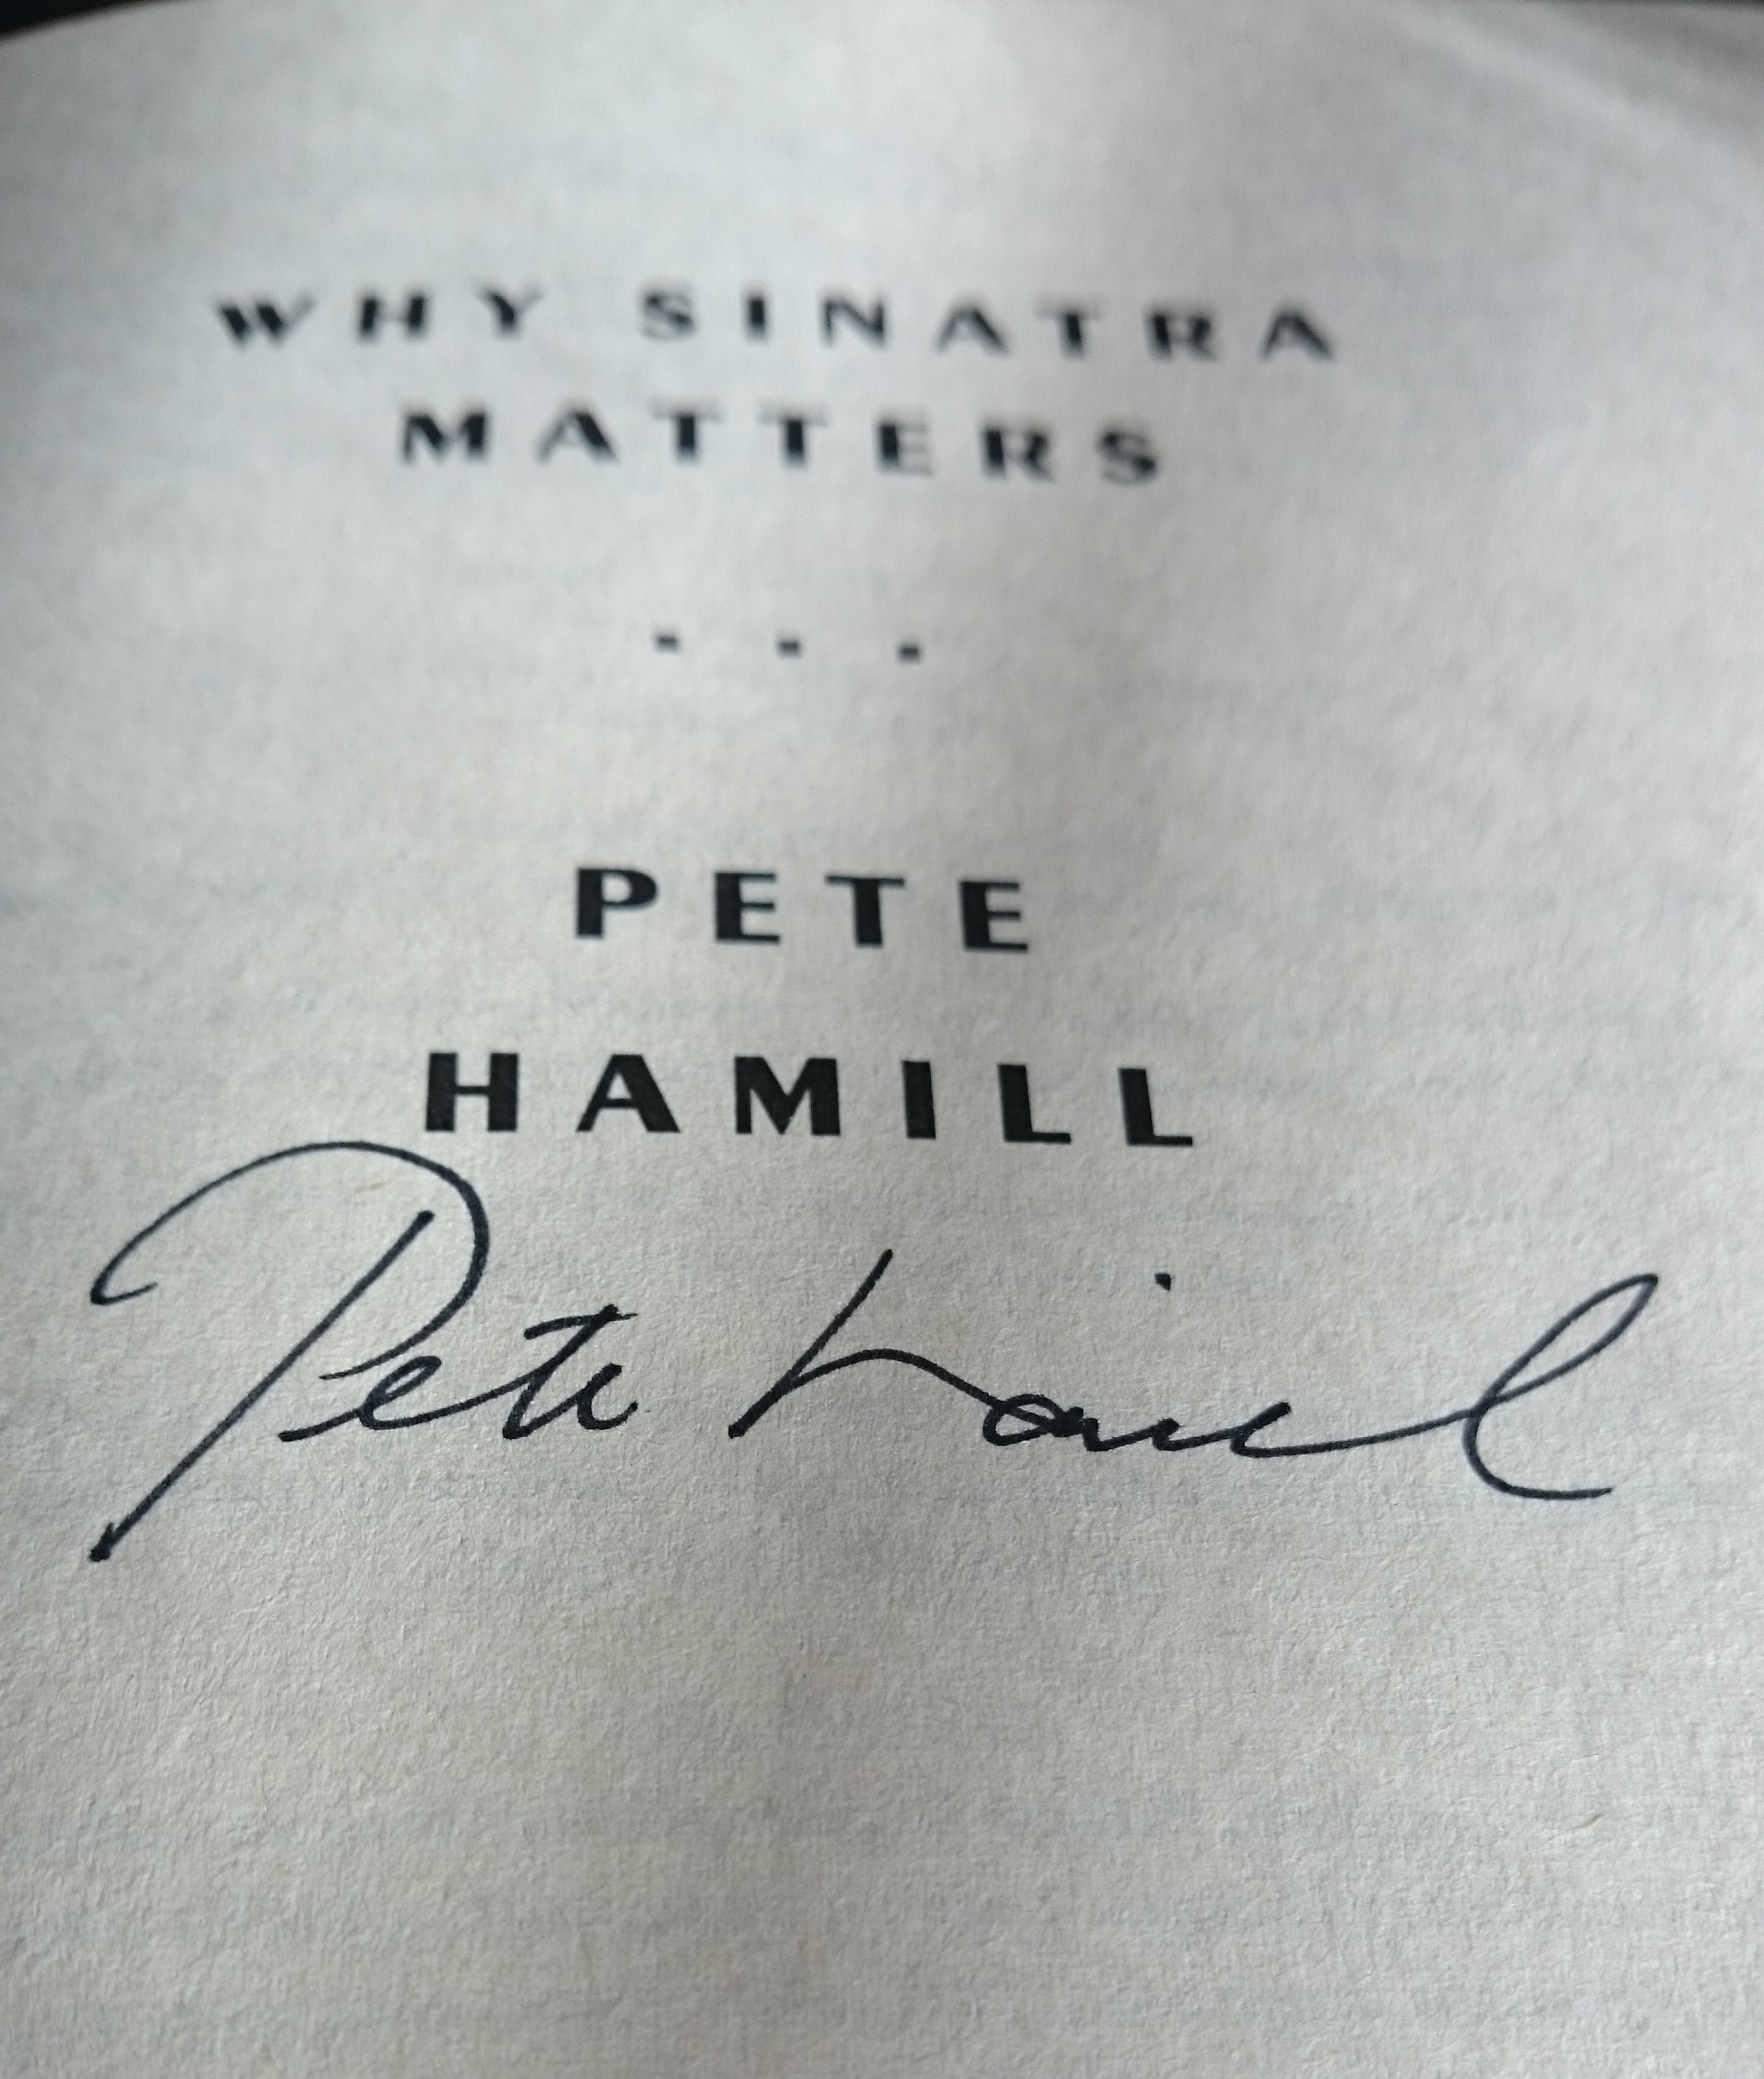 Thanks for the autograph Pete.